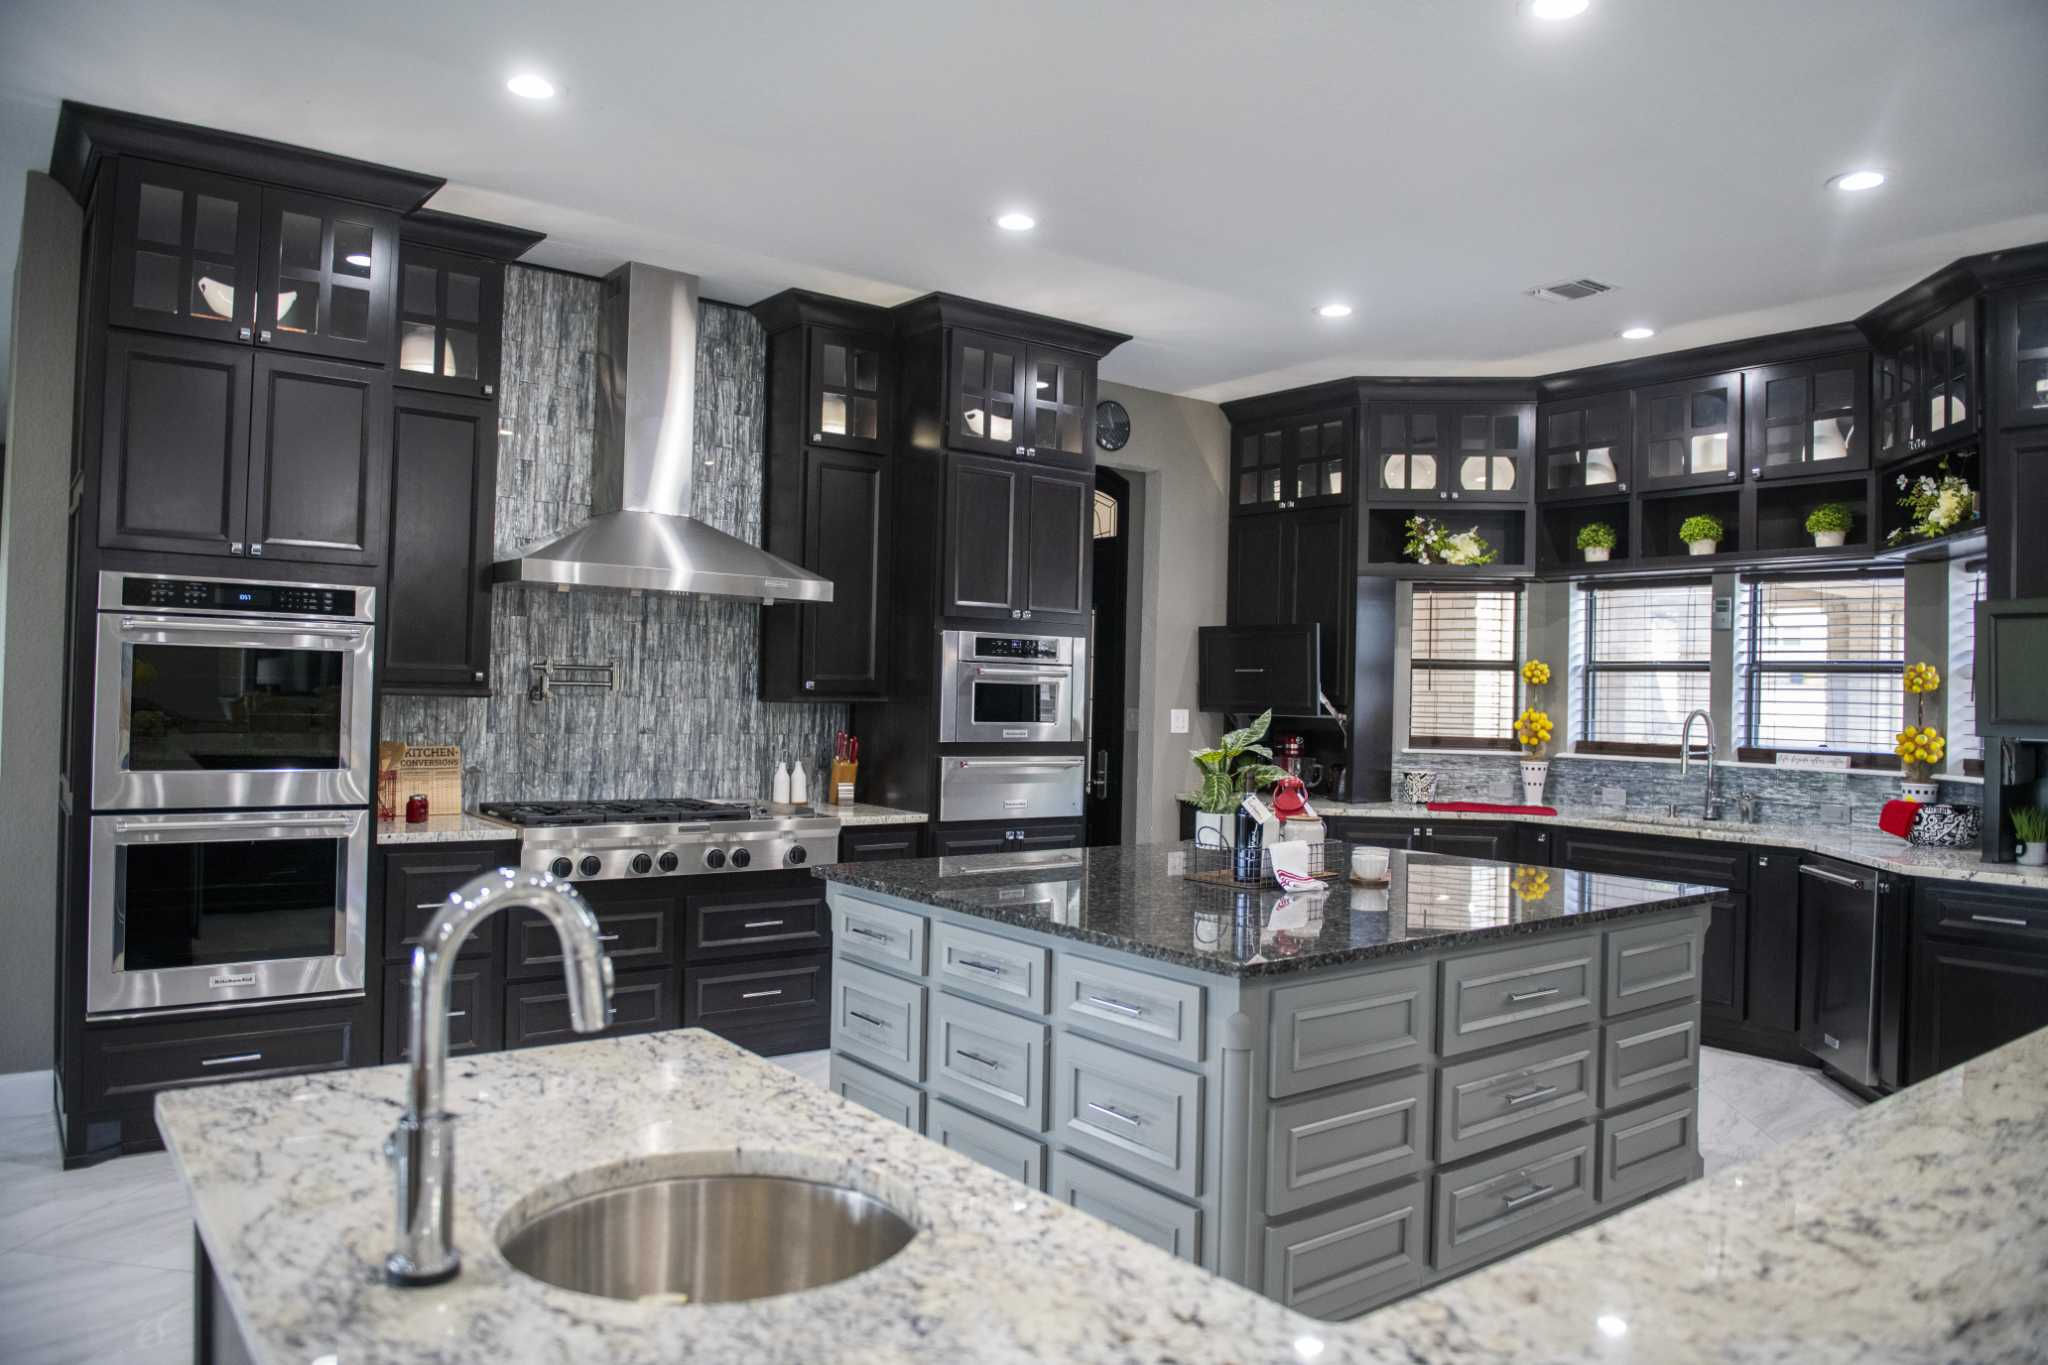 Greg and Vanessa Douglas incorporated some of the latest trends in kitchen cabinets when they renovated their kitchen in their home in Garden Ridge.